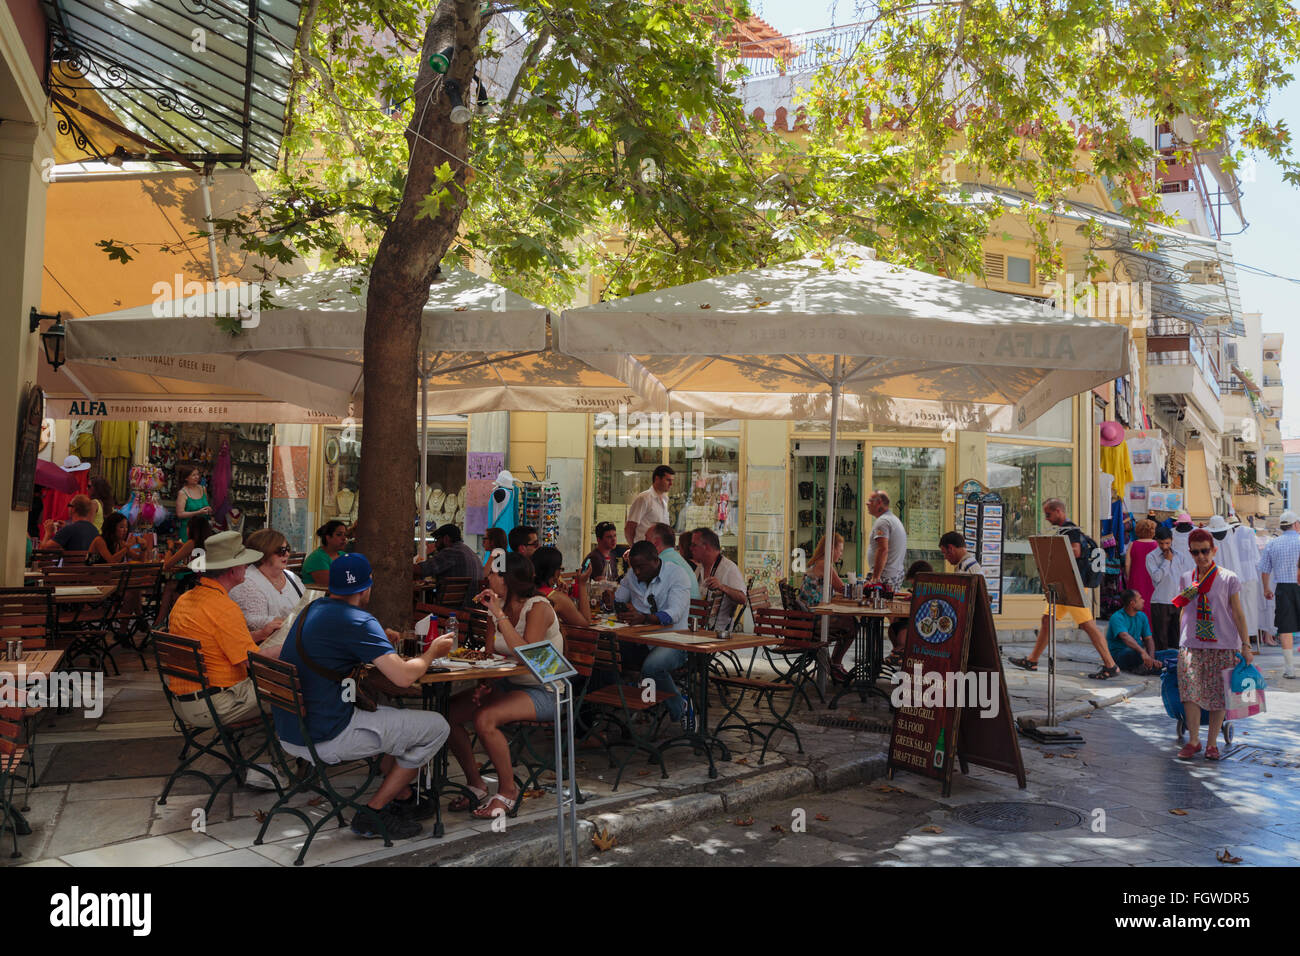 Athens, Attica, Greece.  Cafe scene in the Plaka neighbourhood.  Customers enjoying drinks and food at pavement - Stock Image